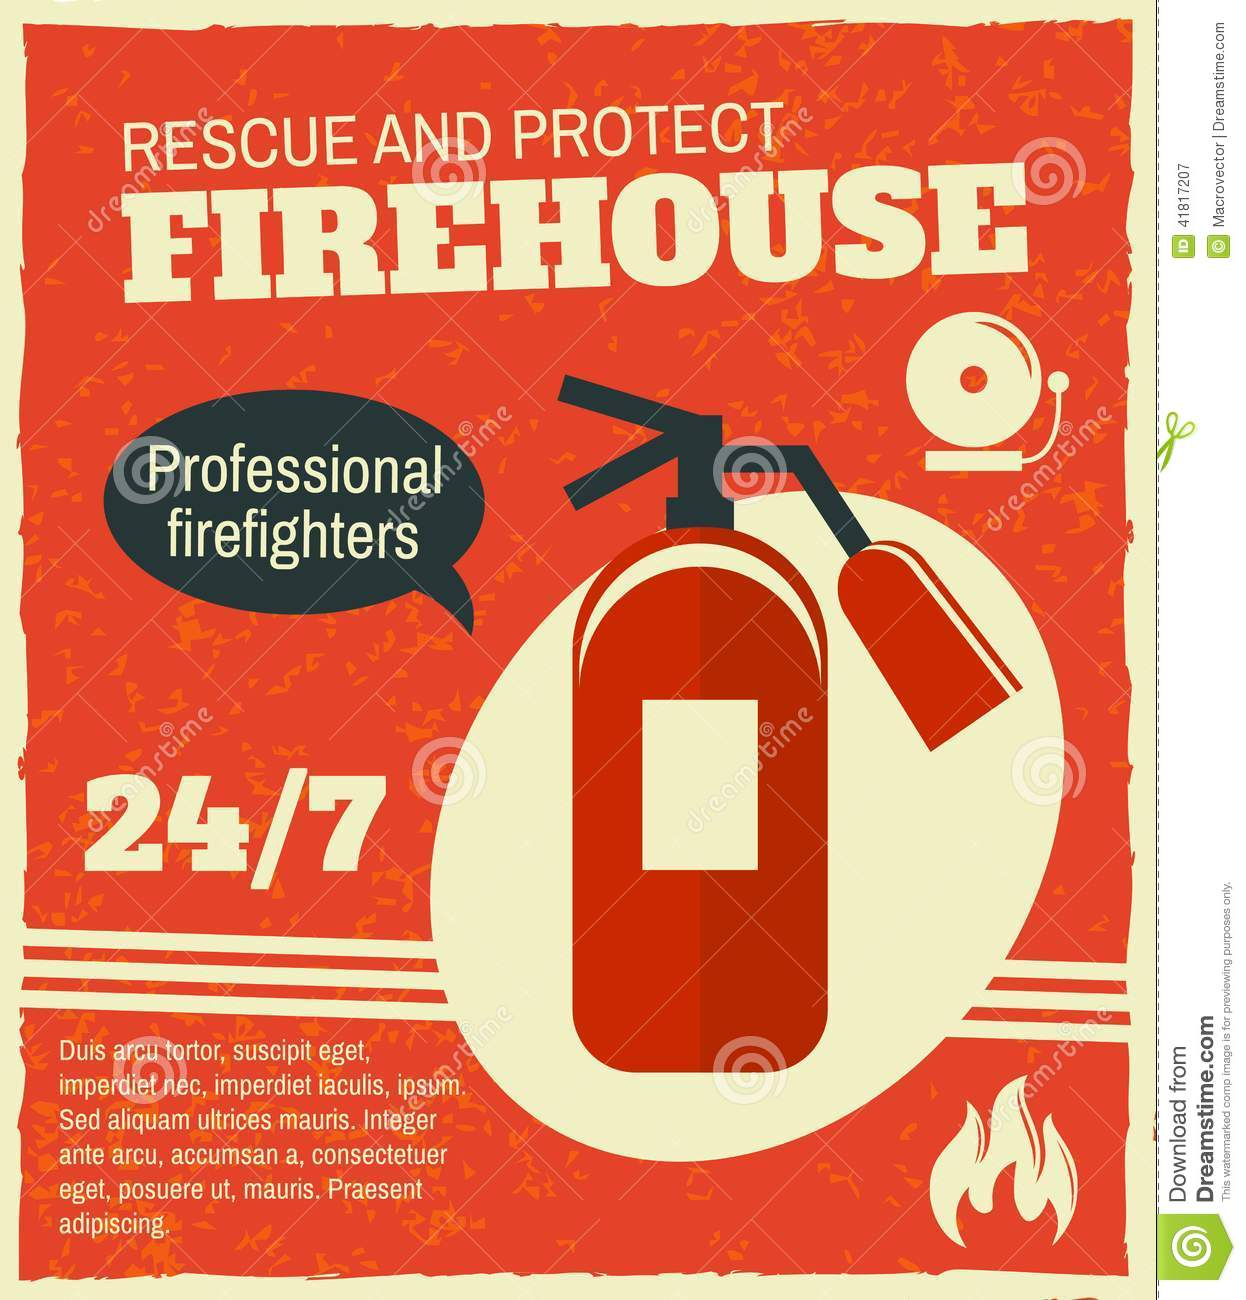 Firefighting rescue and protection professional firefighters poster ...